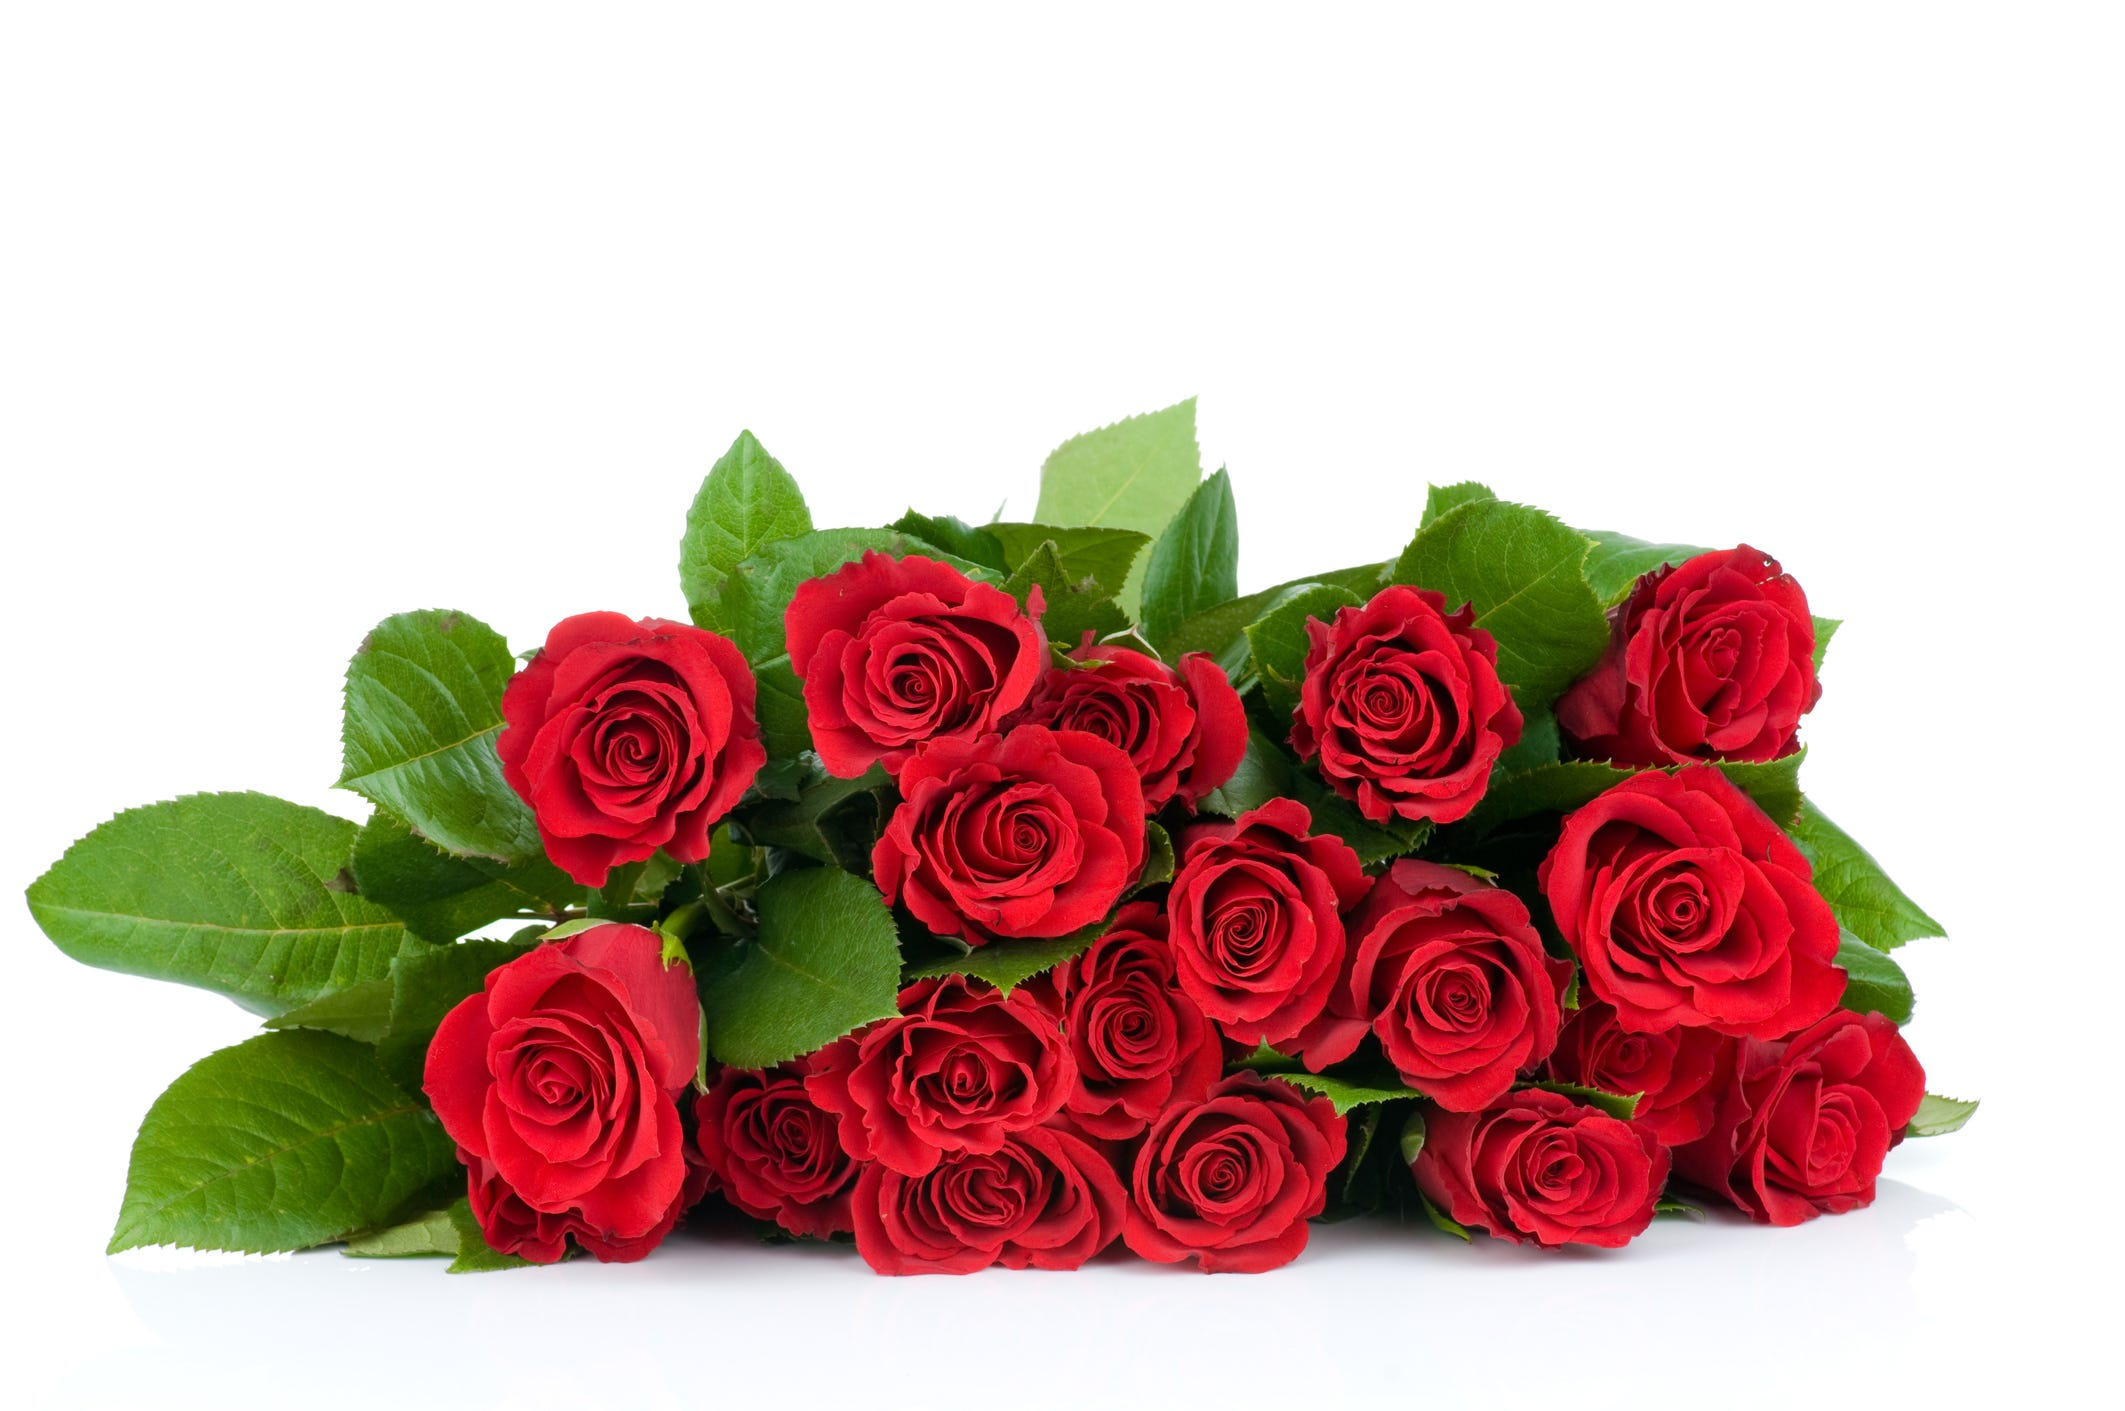 January Is the best time to order roses for Valentine's Day